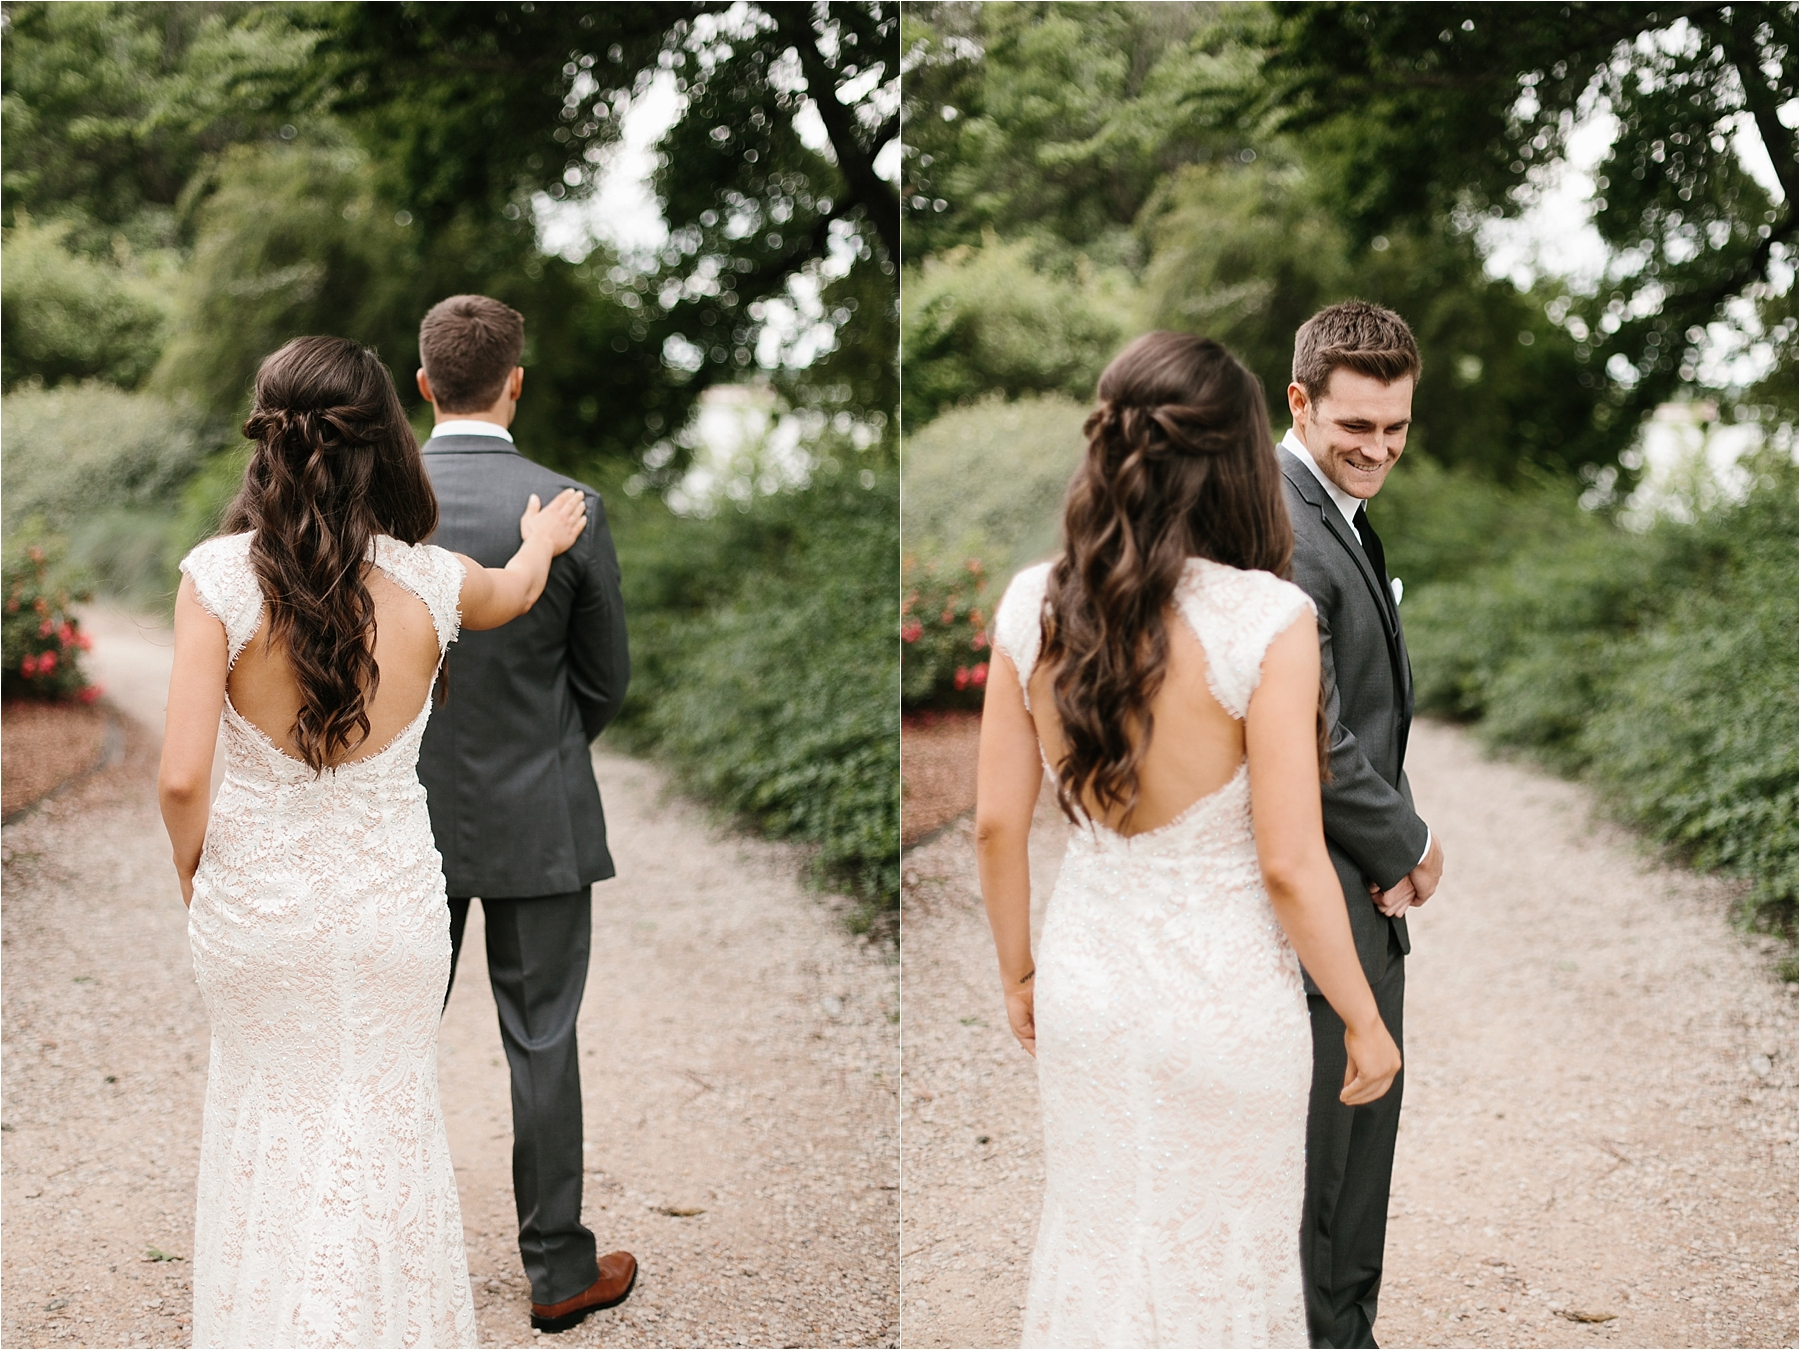 Devyn + Caden __ a Dallas Arboretum Garden Style Wedding by North Texas Wedding Photographer Rachel Meagan Photography __ 015